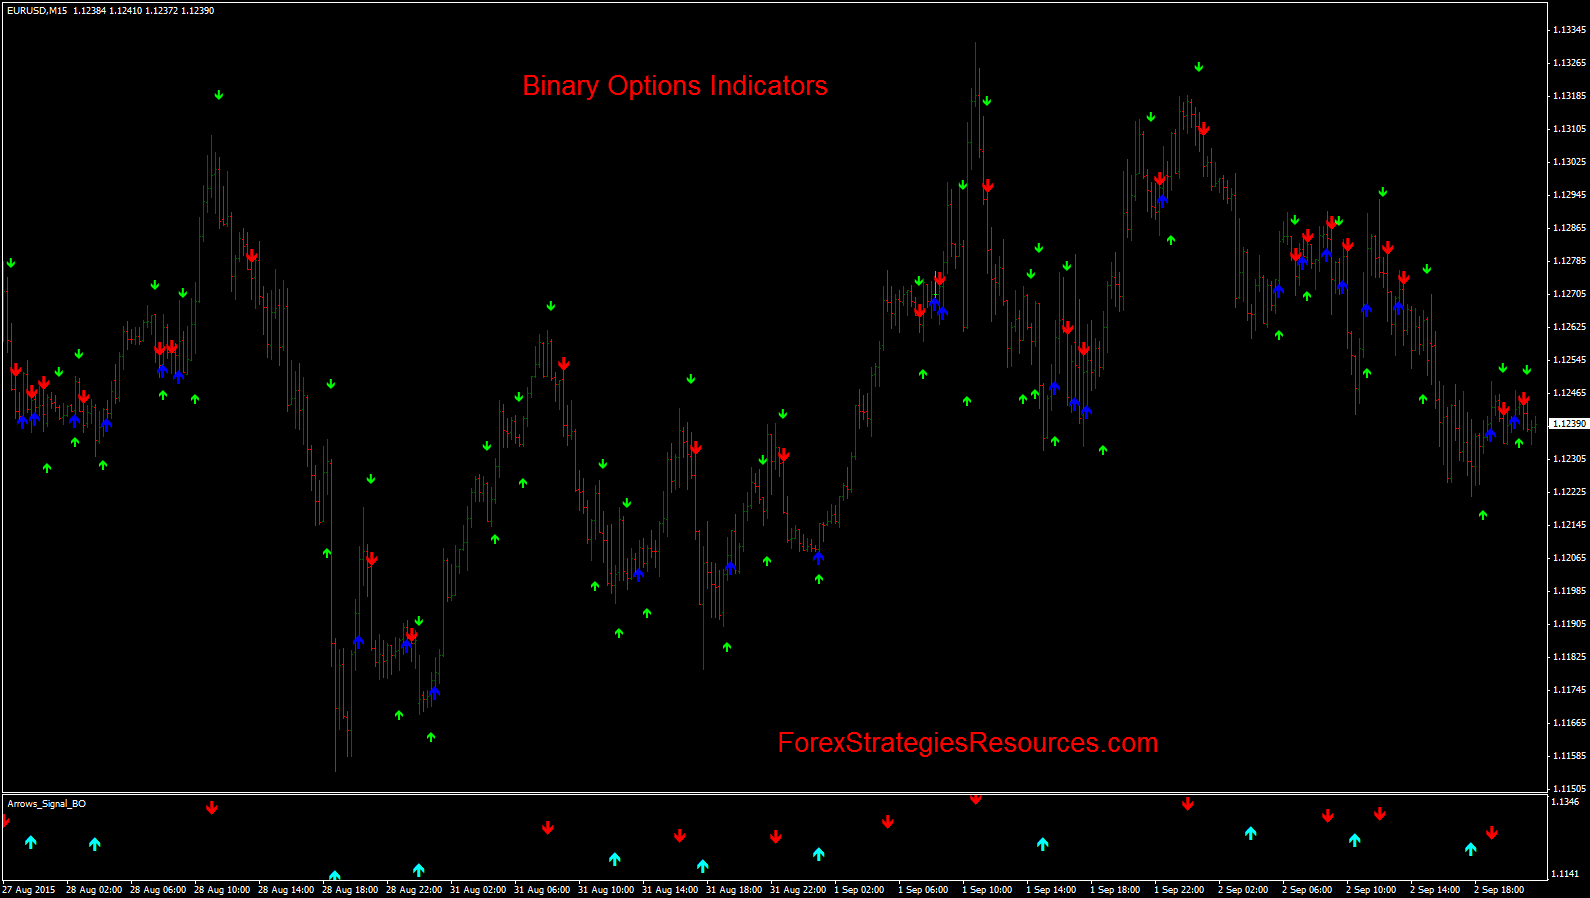 Unregulated mt4 binary options brokers